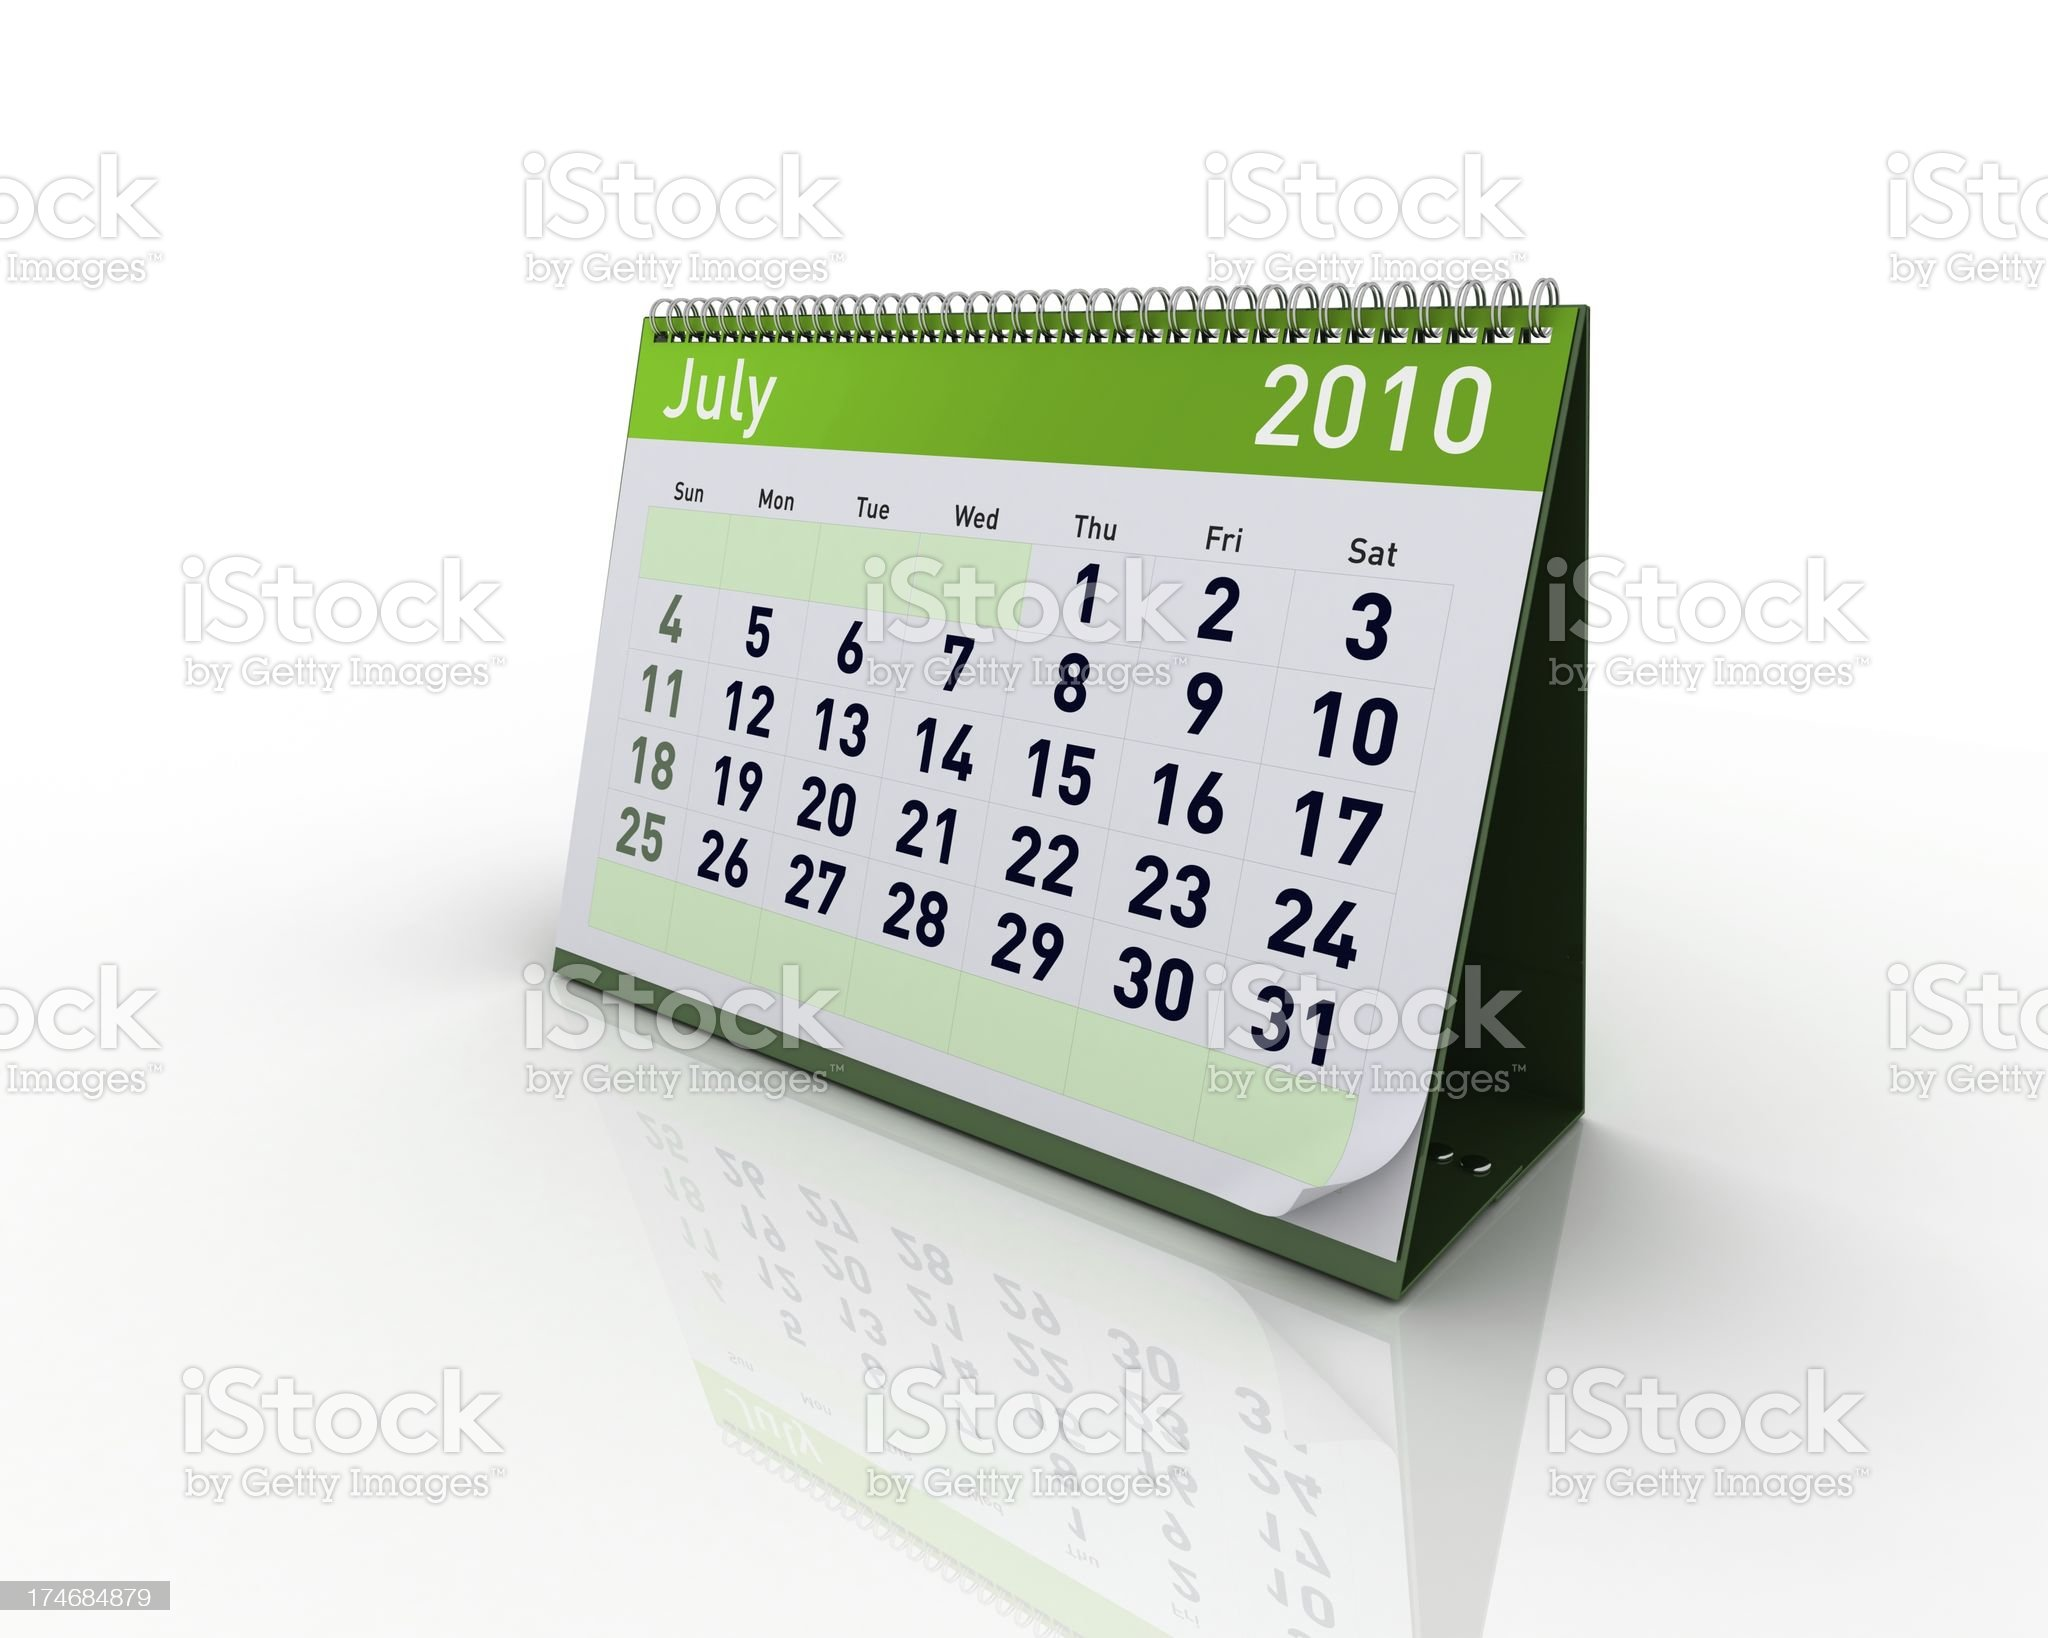 Calendar - July 2010 royalty-free stock photo